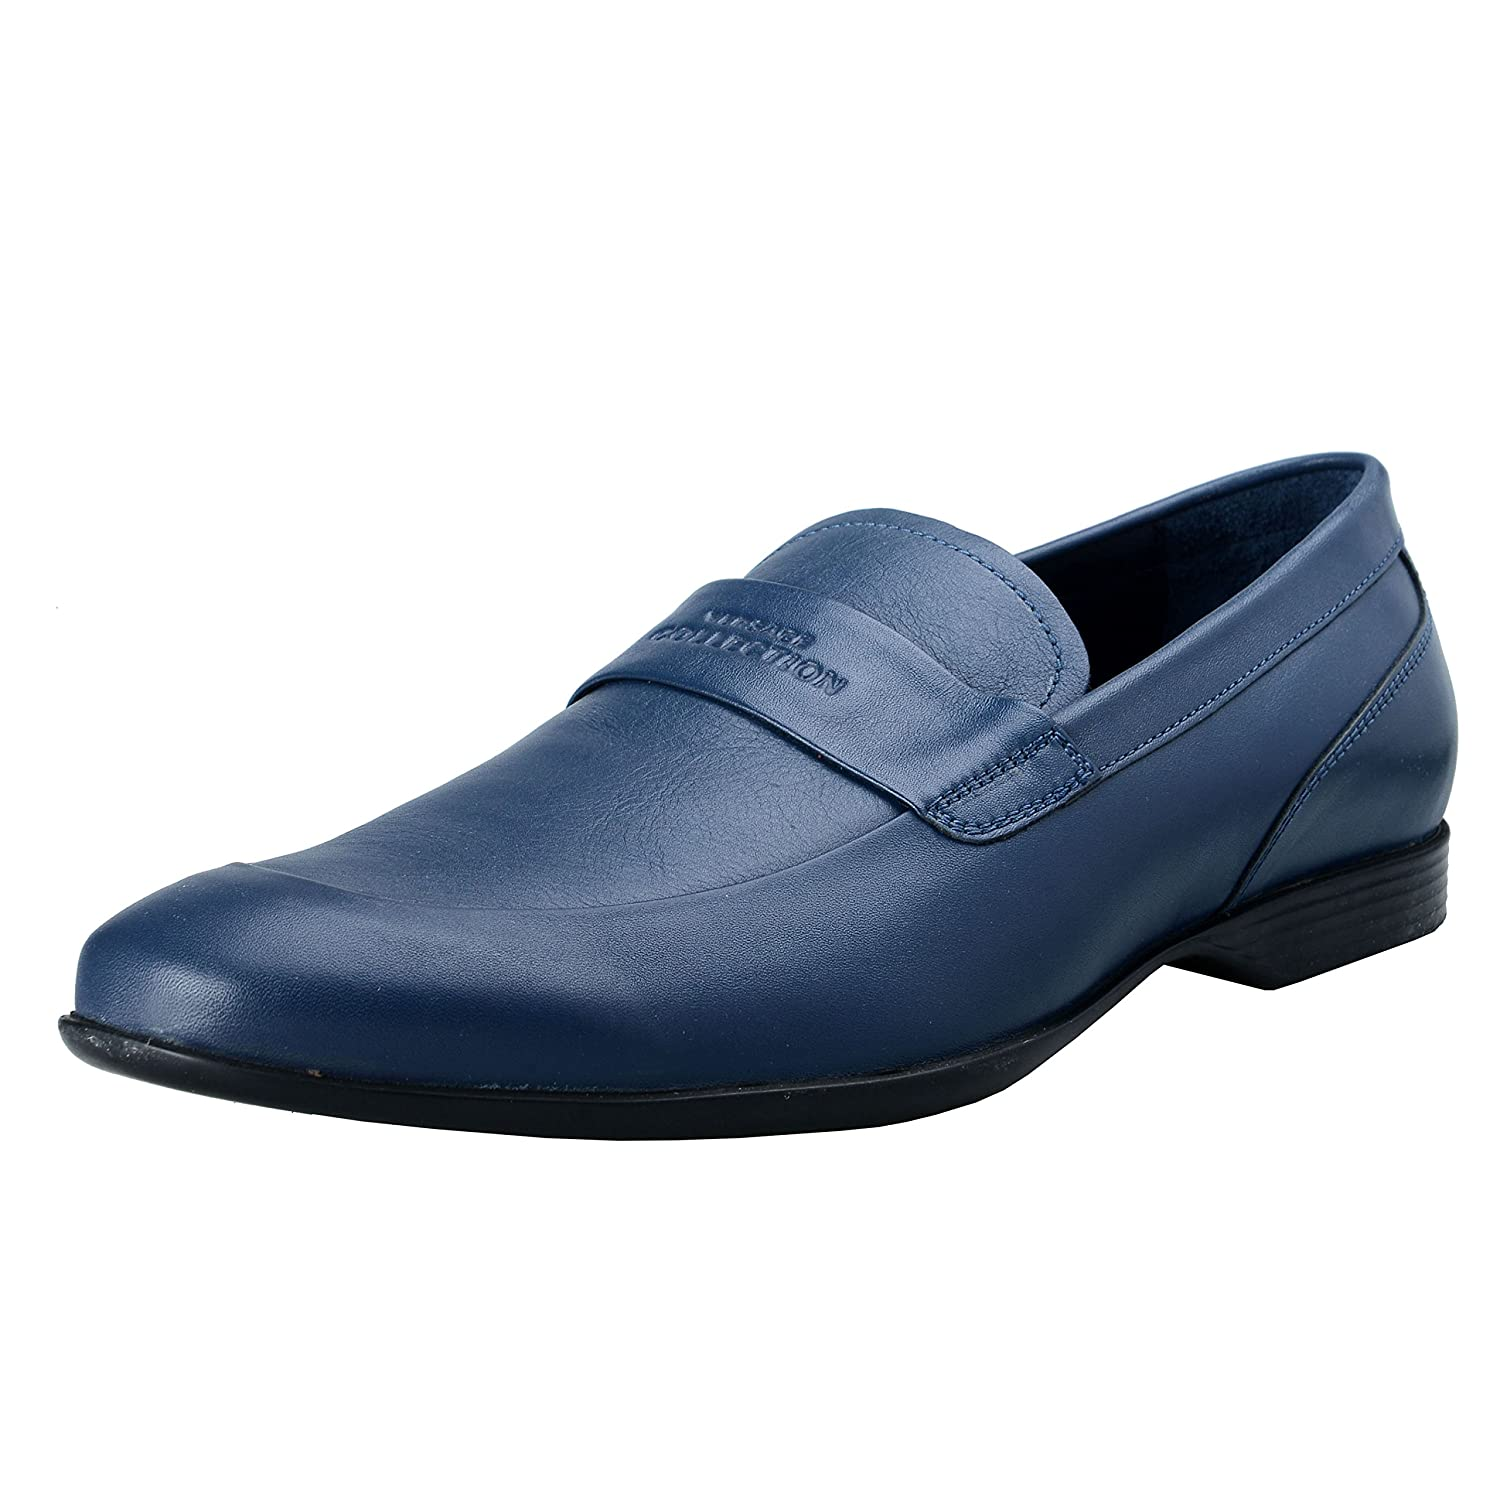 4a93859b24b6 Versace Collection Men s Blue Leather Loafers Slip On Shoes US 9 IT 42 cheap